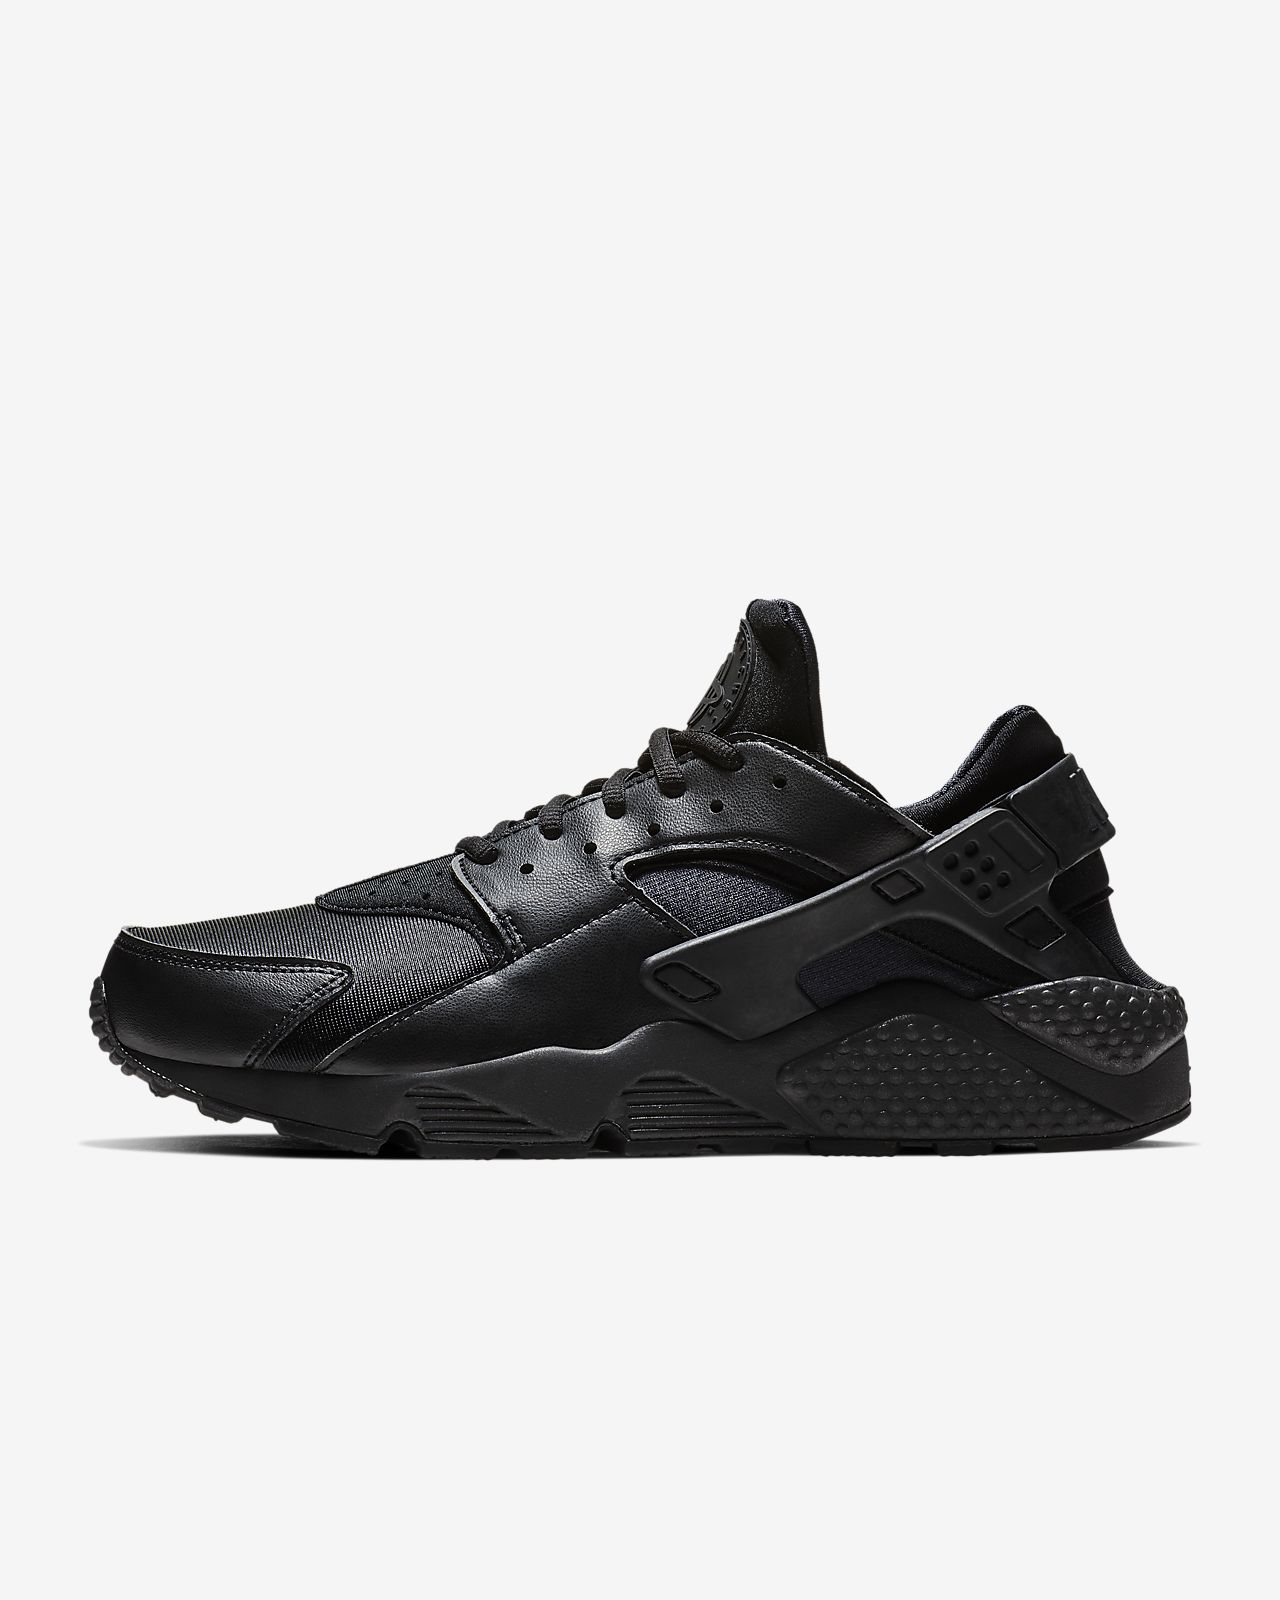 84ecc790b9d8 Low Resolution Nike Air Huarache Women s Shoe Nike Air Huarache Women s Shoe